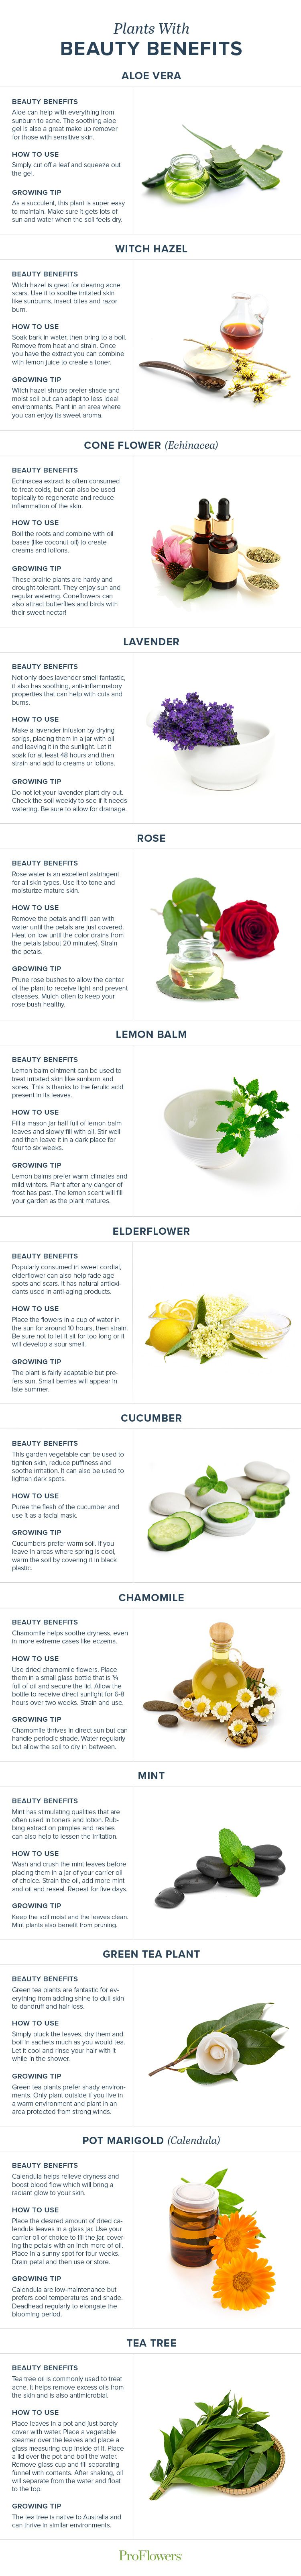 Are you looking for ways to cut chemicals out of your beauty routine? Go organic! We list 13 plants and their benefits for your beauty routine.